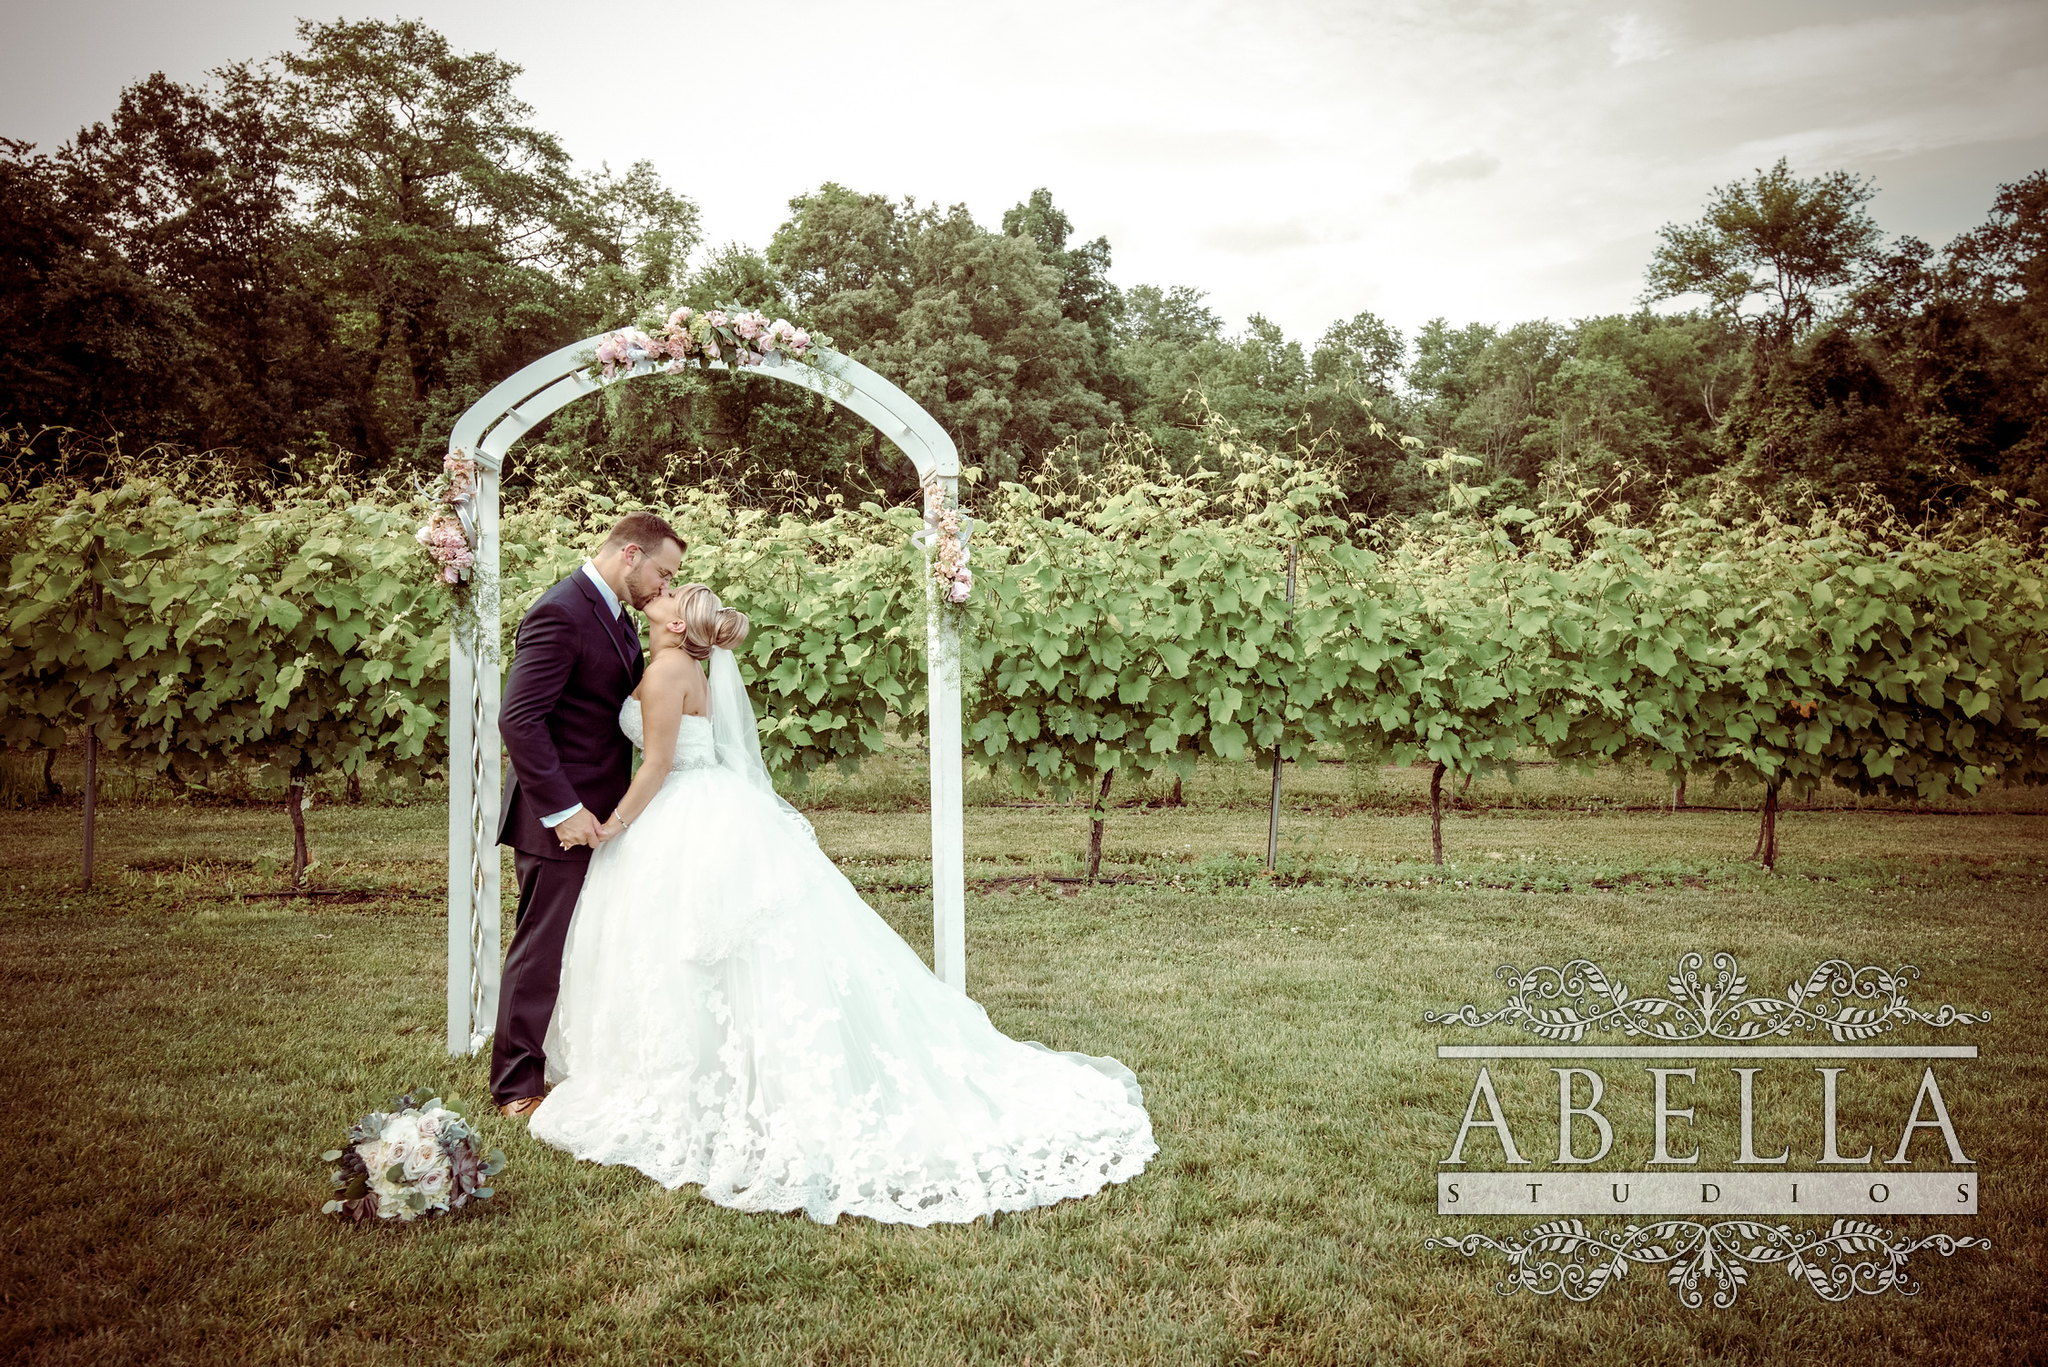 NJ Wedding Photography by Abella Studios